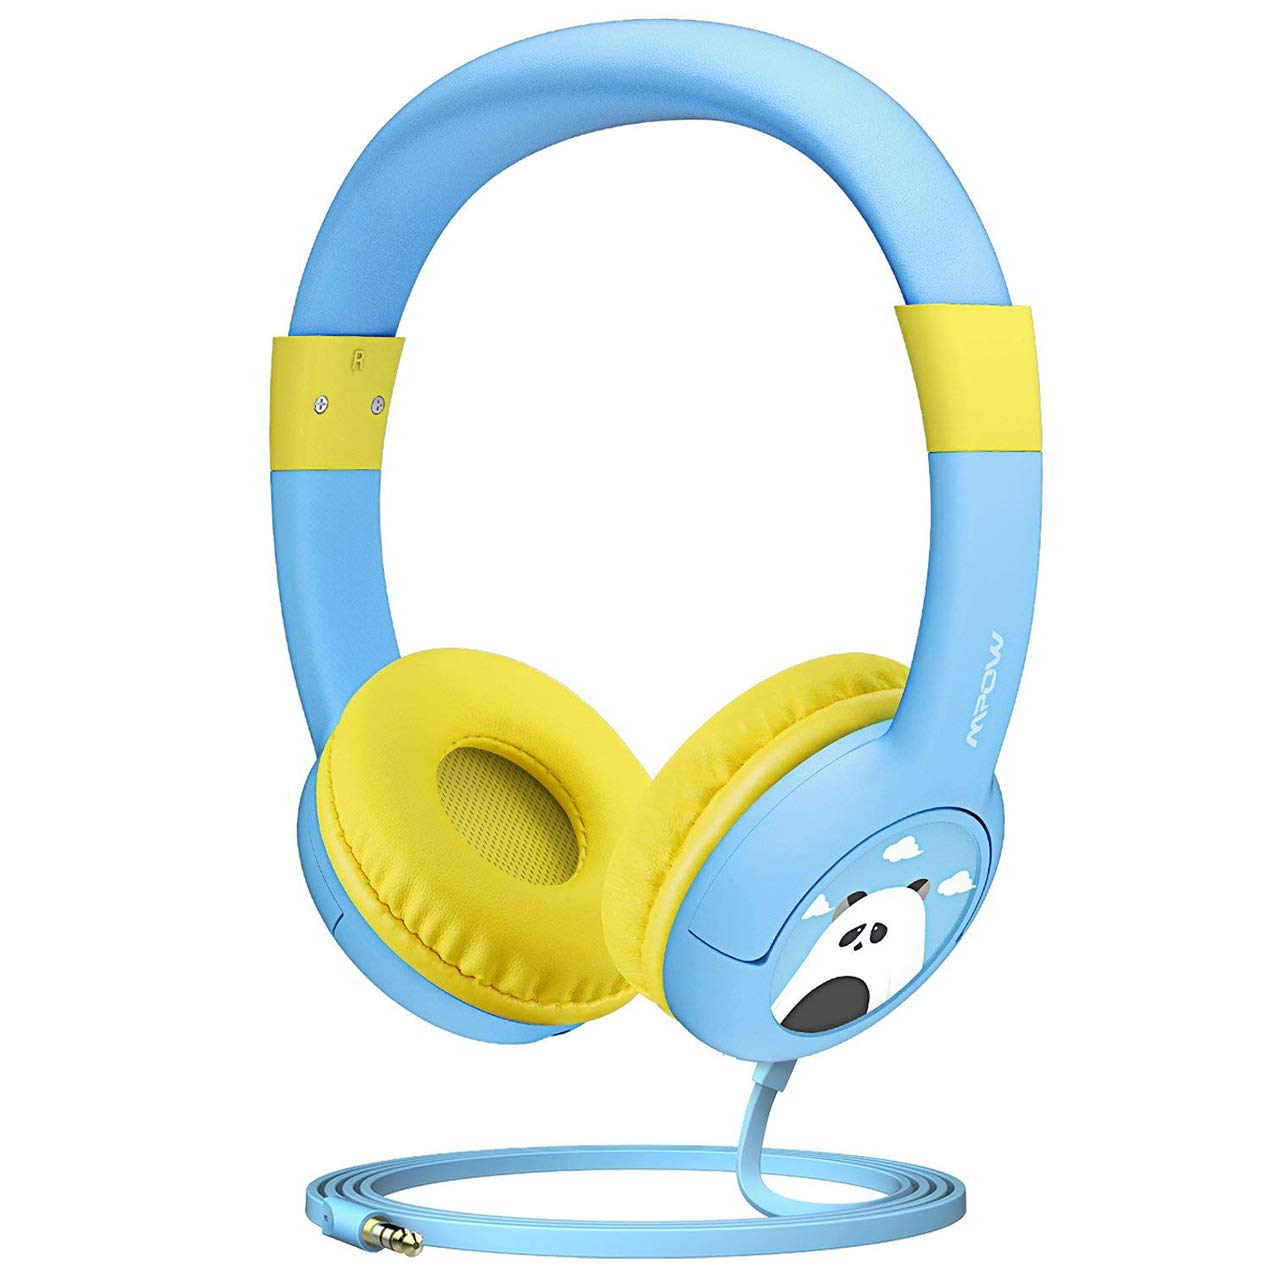 Kids' headphone from Mpow | The Coolest Birthday Gifts for 2 year olds